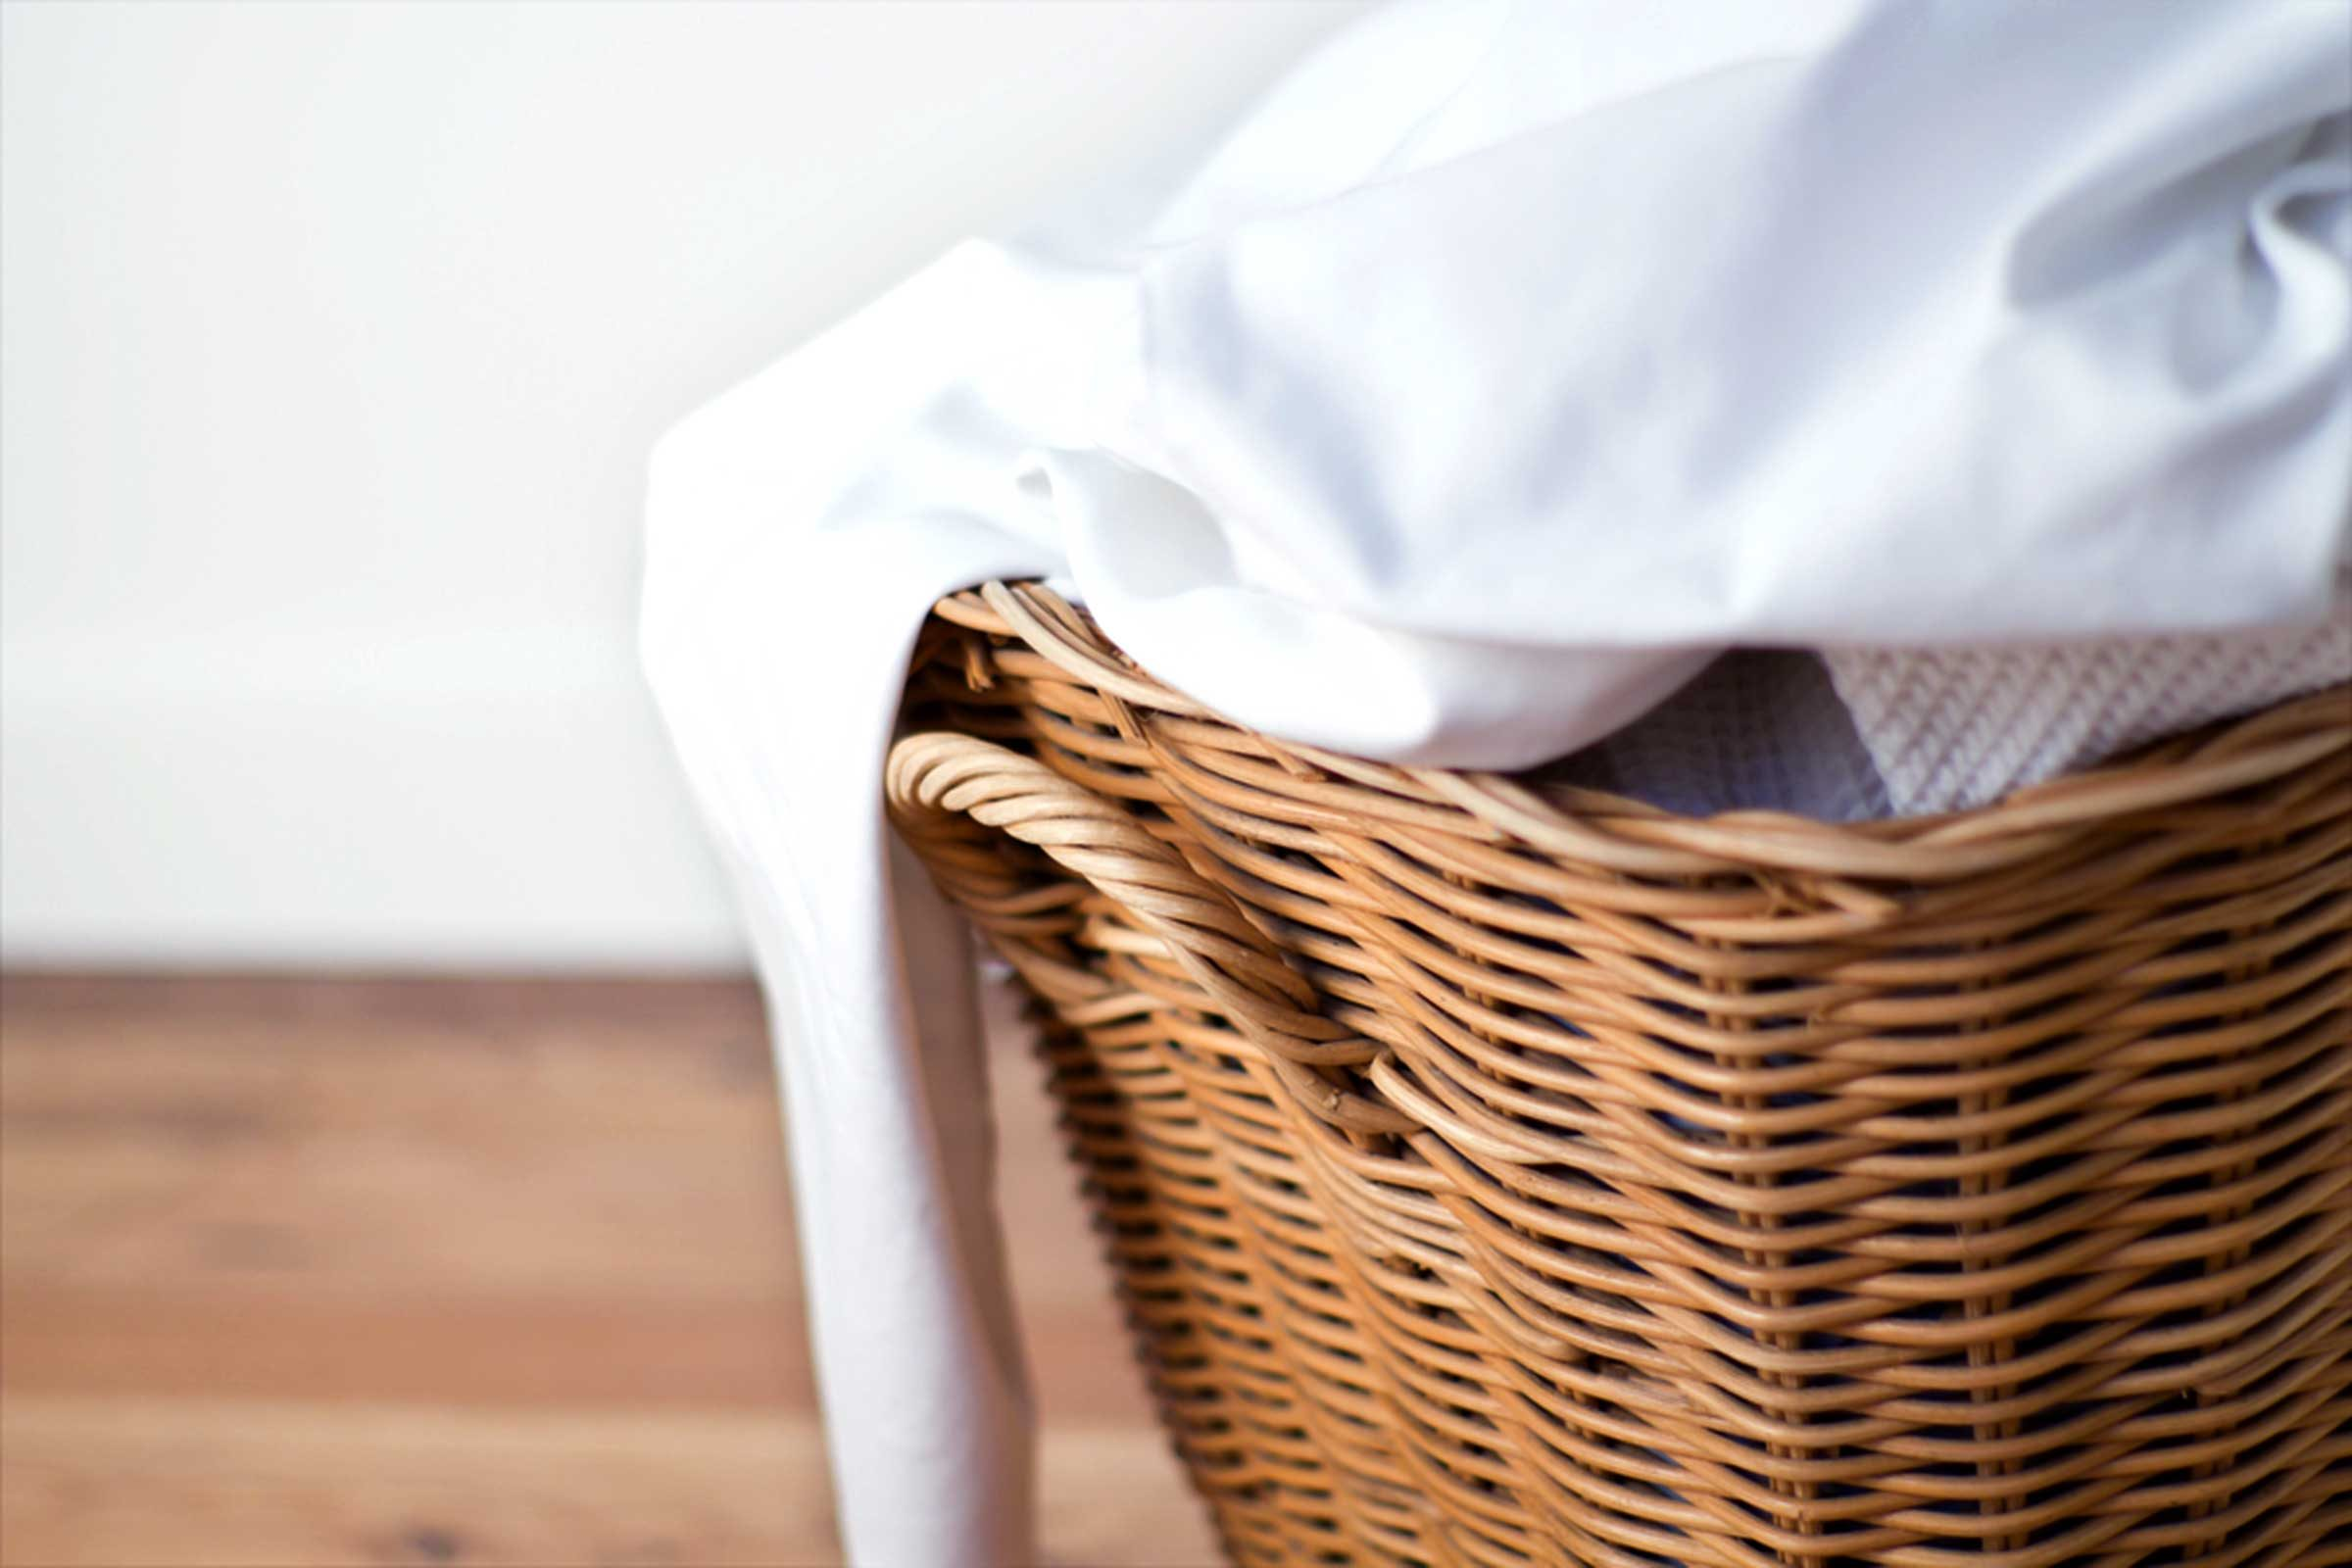 laundry in a wicker hamper